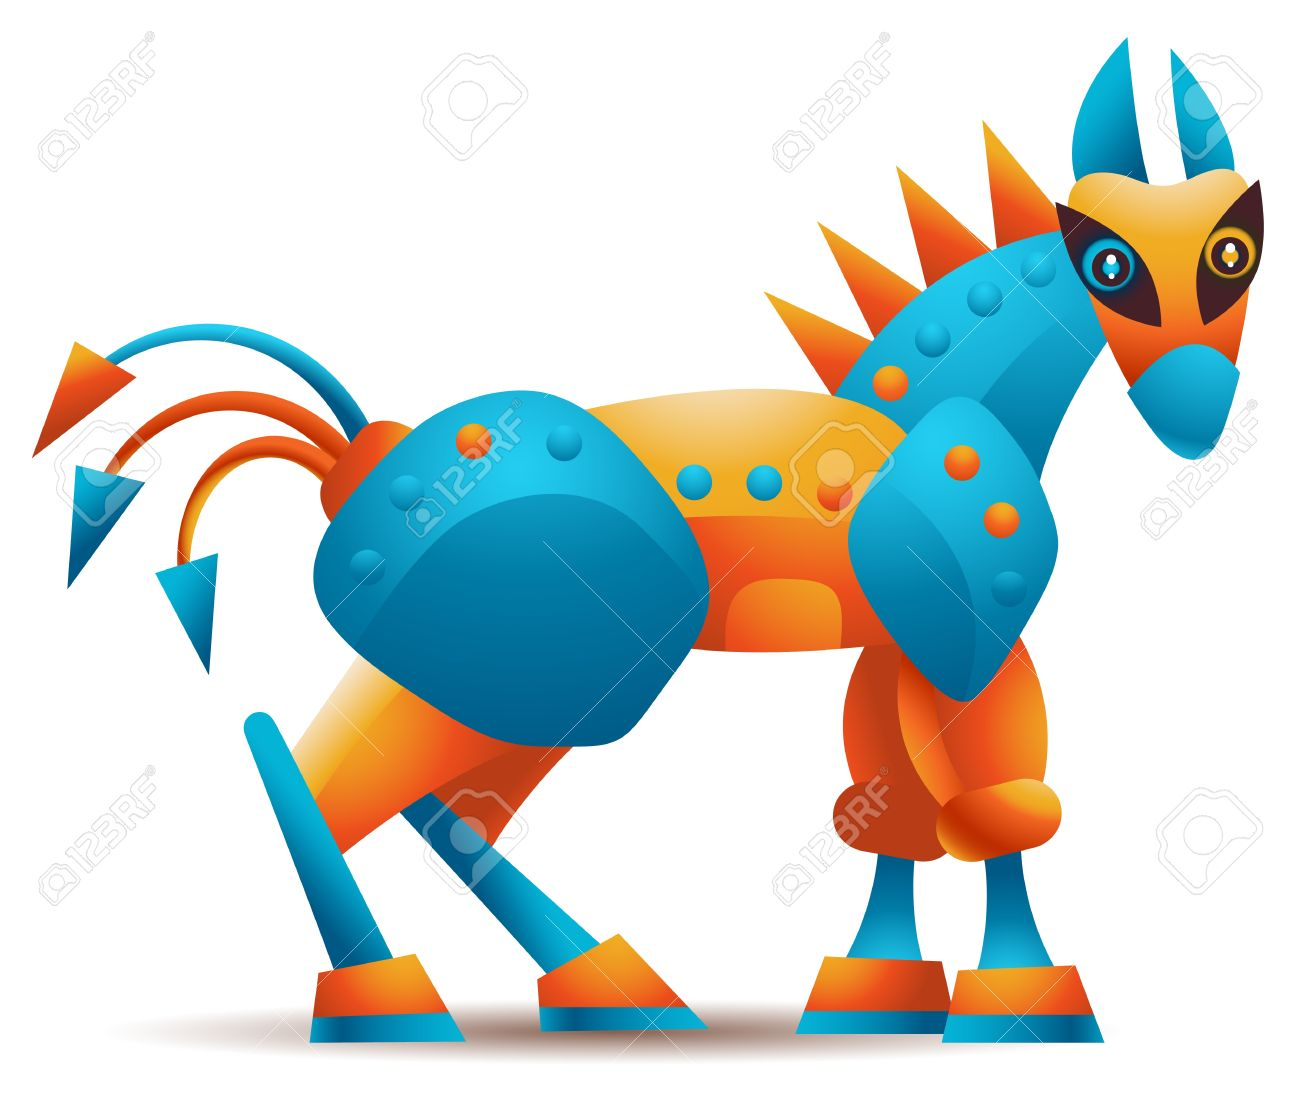 Computer Trojan Horse Malware Or Any Other Trojan Horse Concept Royalty Free Cliparts Vectors And Stock Illustration Image 13615120